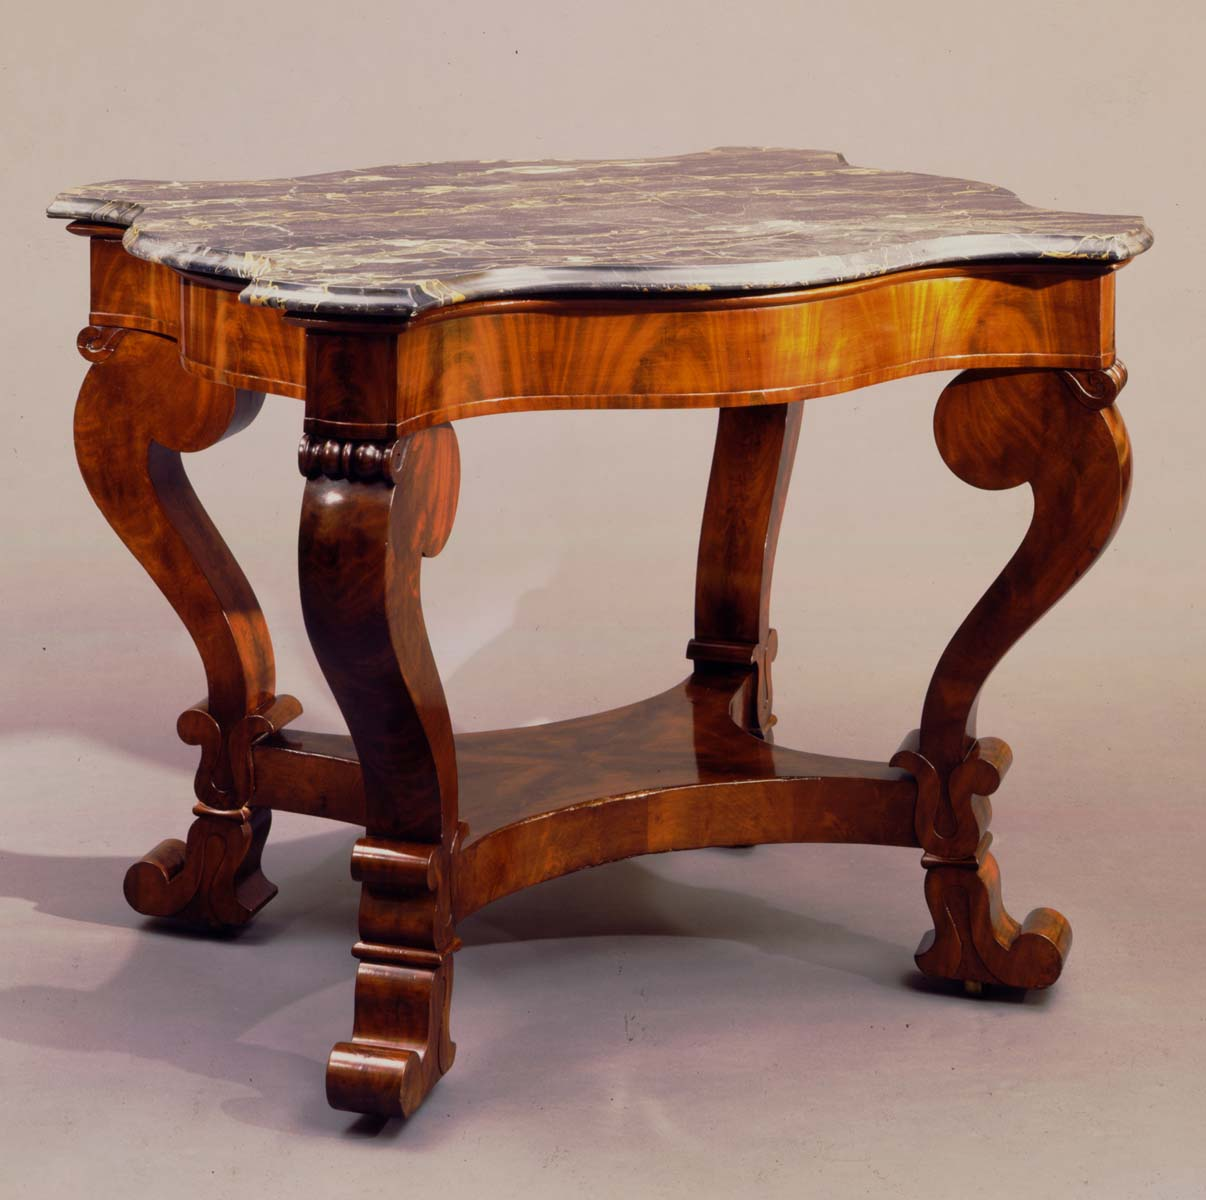 T-C-94441 Meeks Turtle-Top Center Table